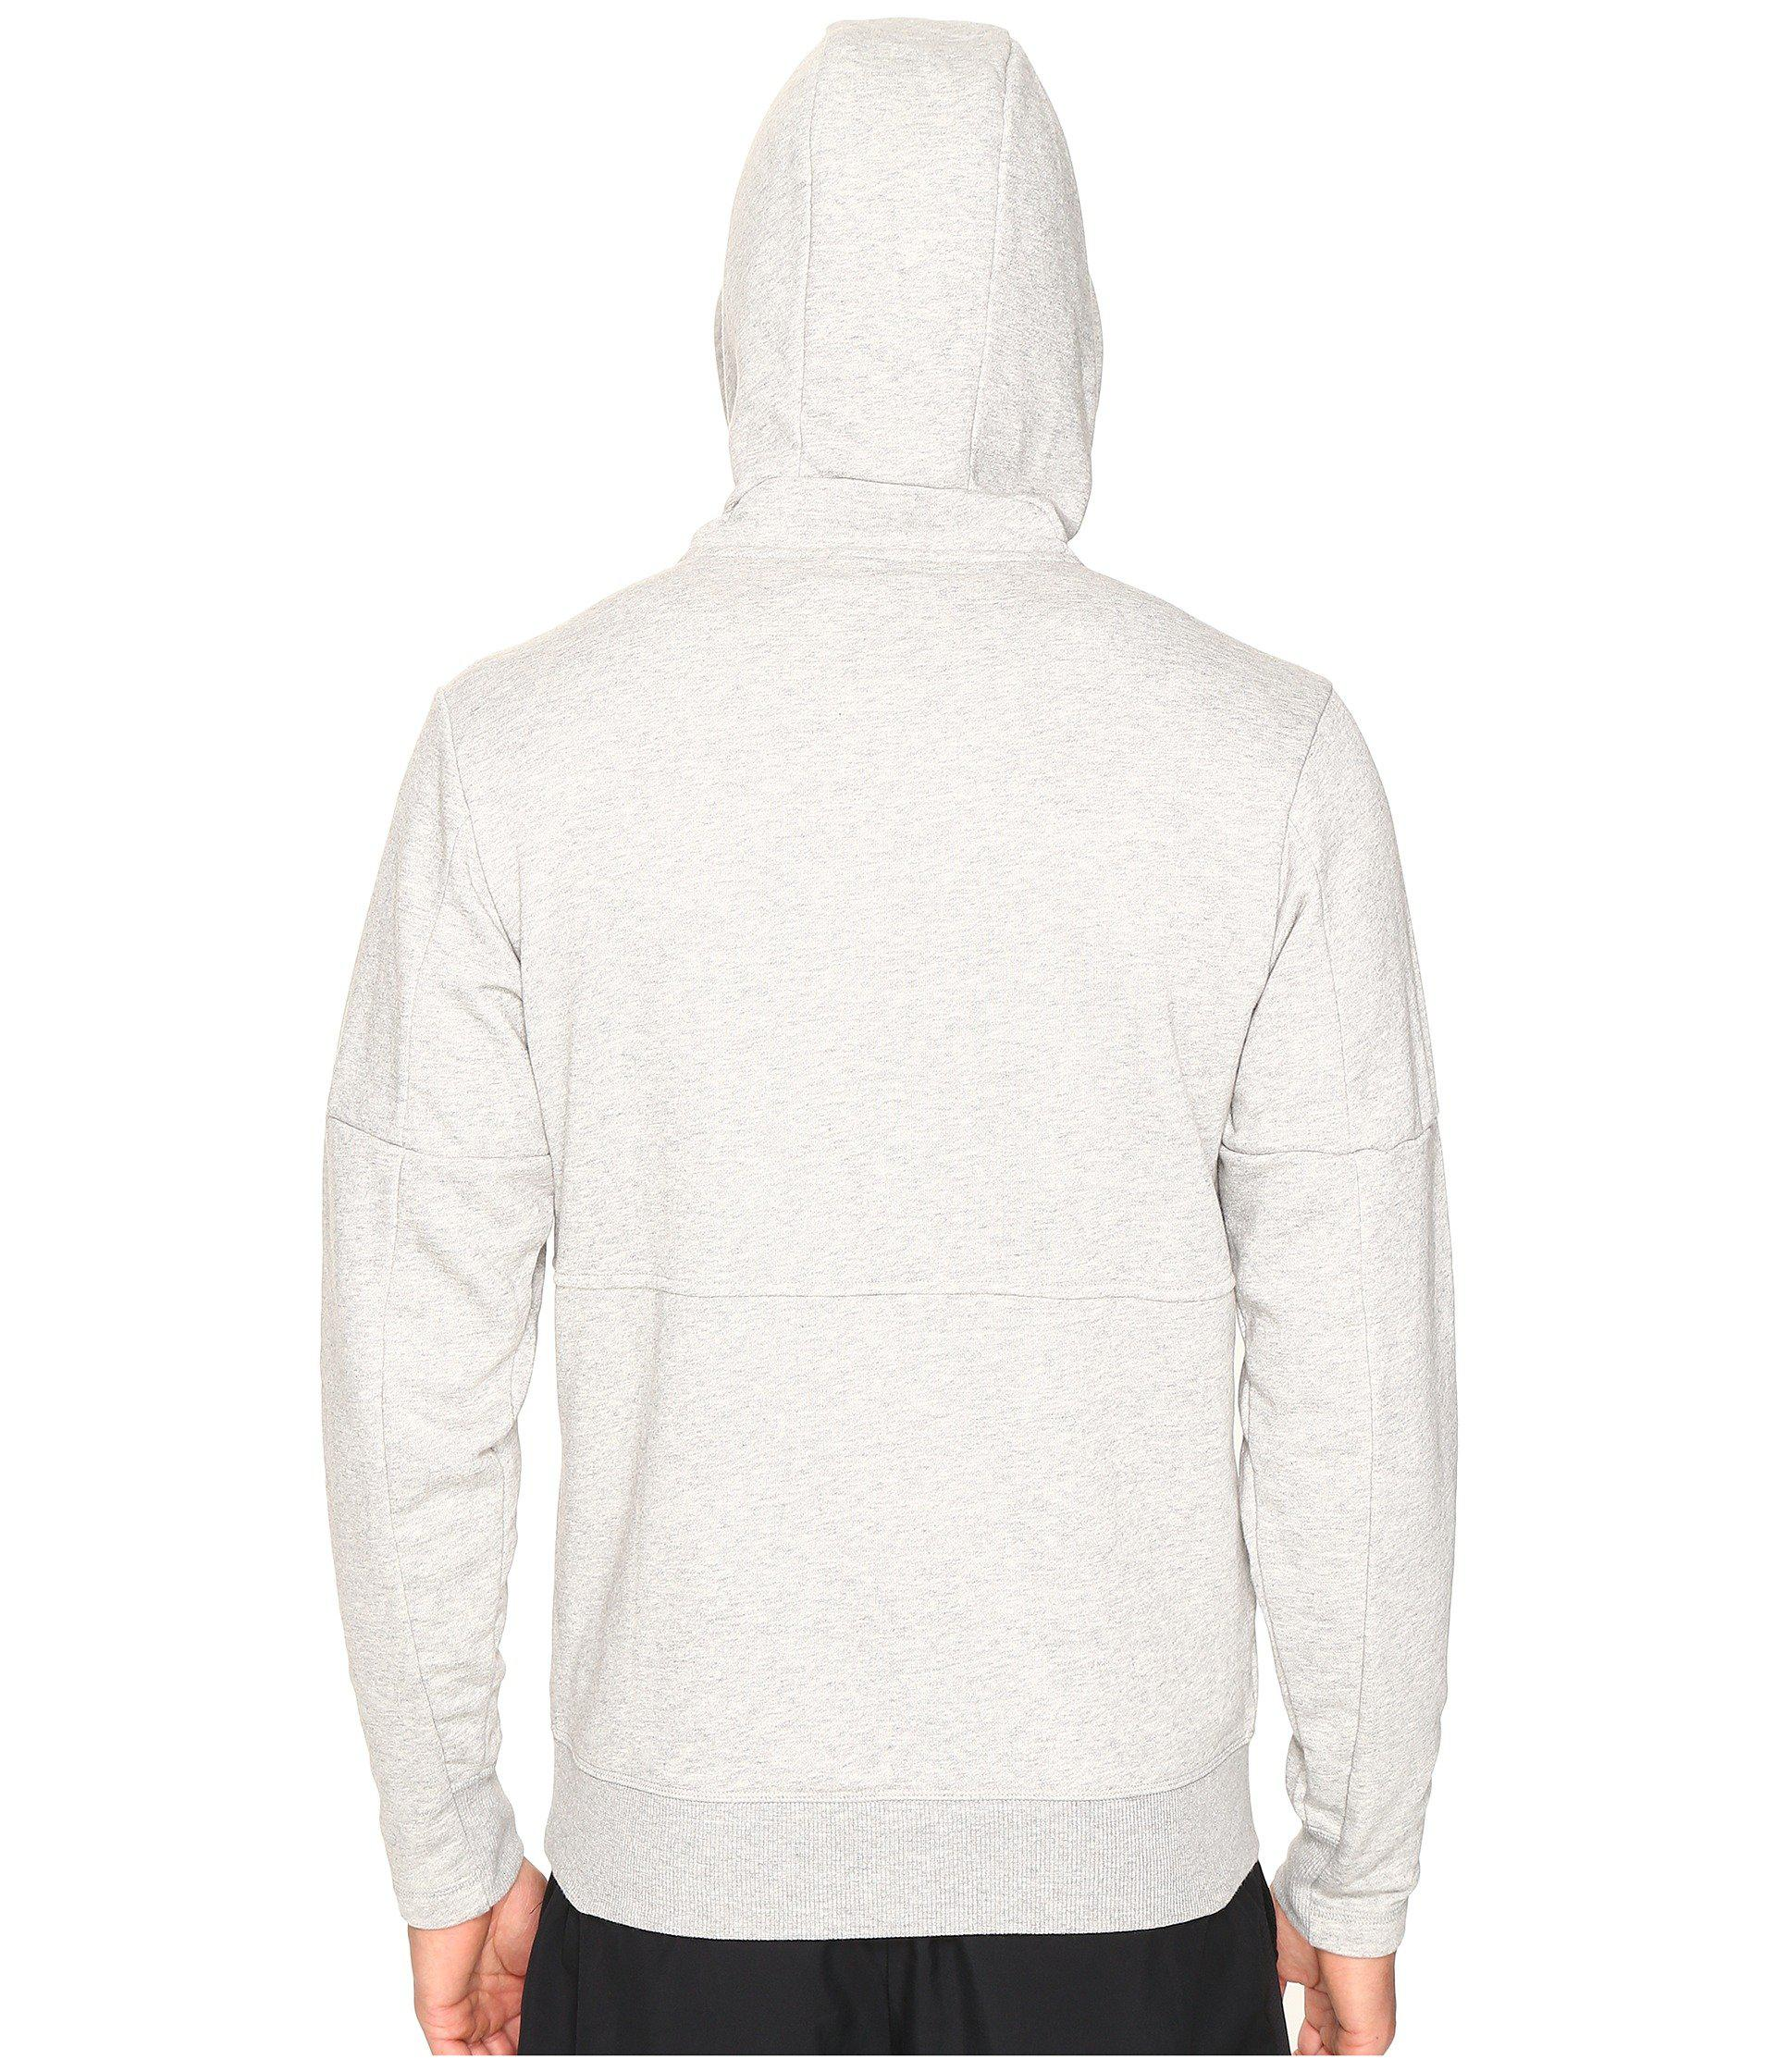 Lyst - Adidas Sport Id French Terry Pullover Hoodie in Gray for Men 23534ab06e43